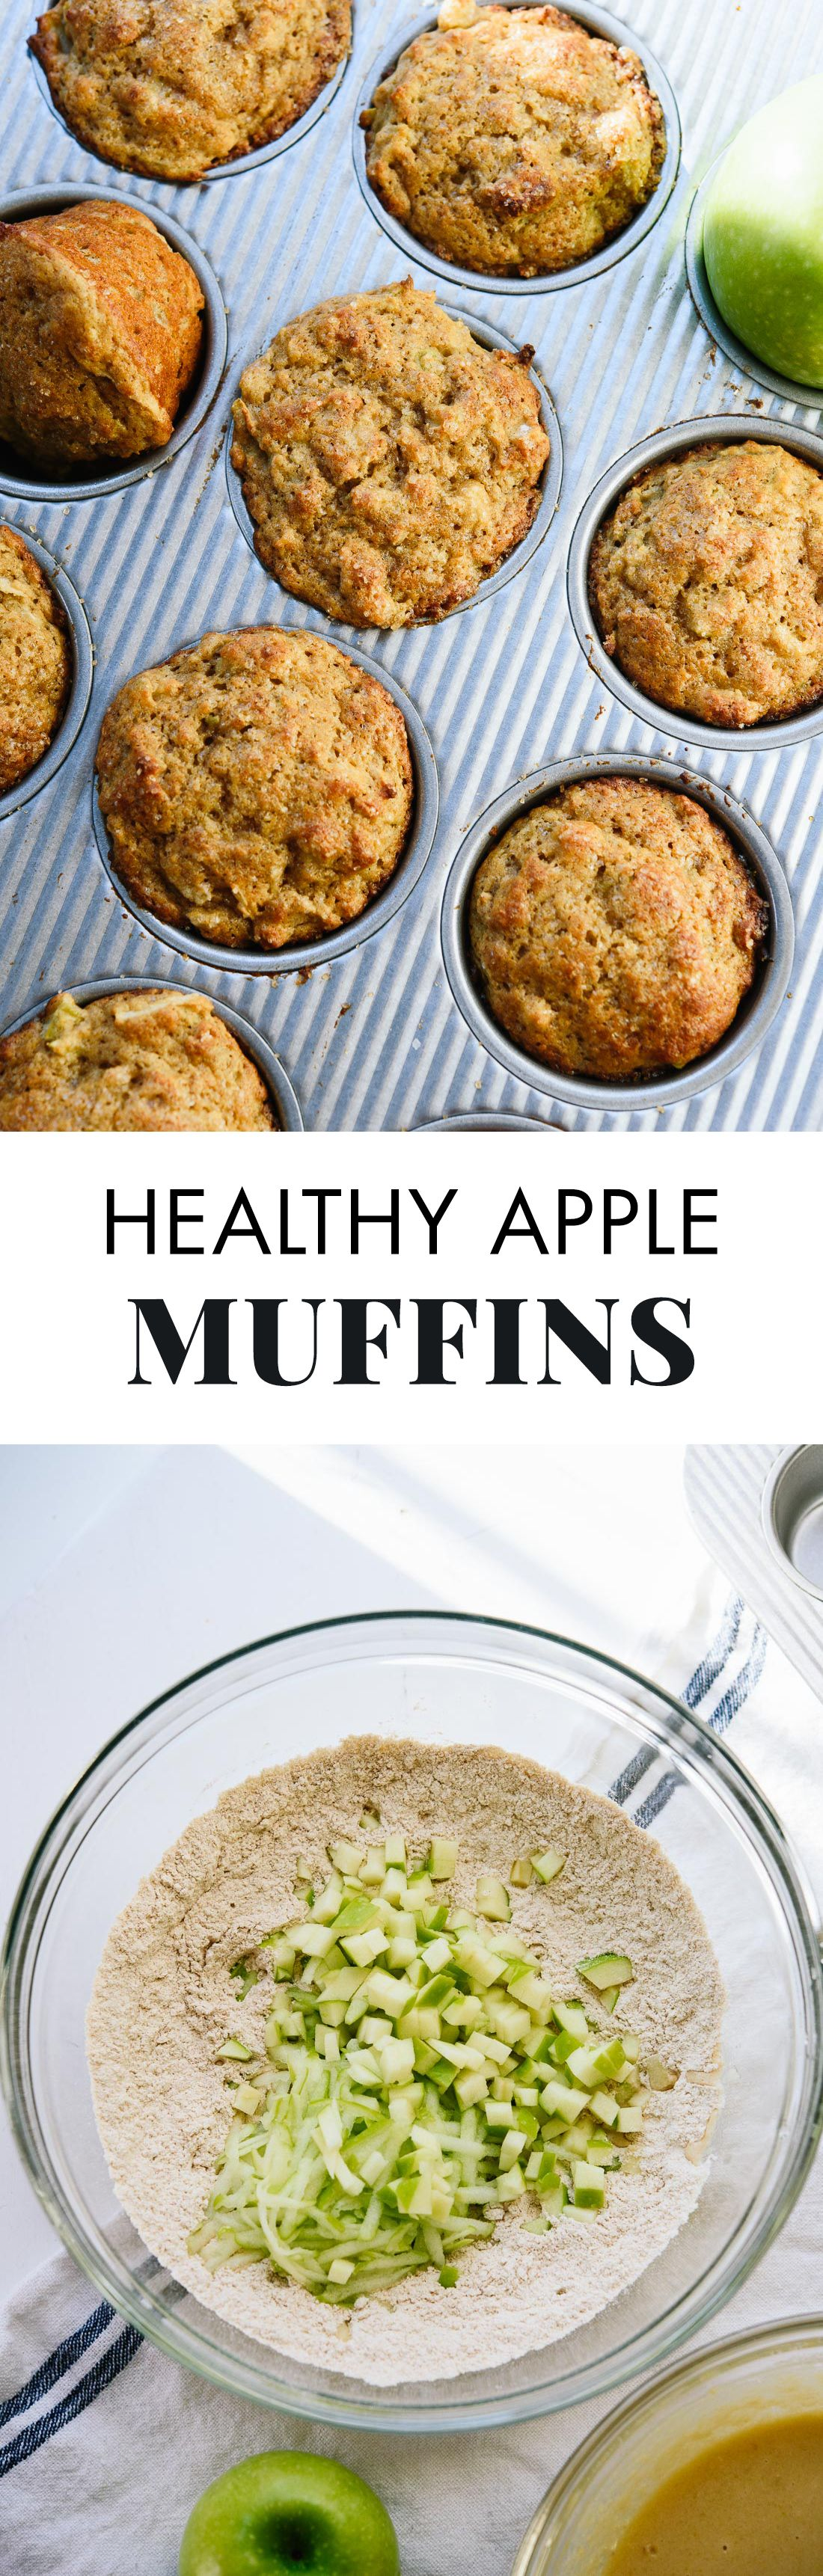 Healthy Apple Muffins Recipe Sweet Treats Apple